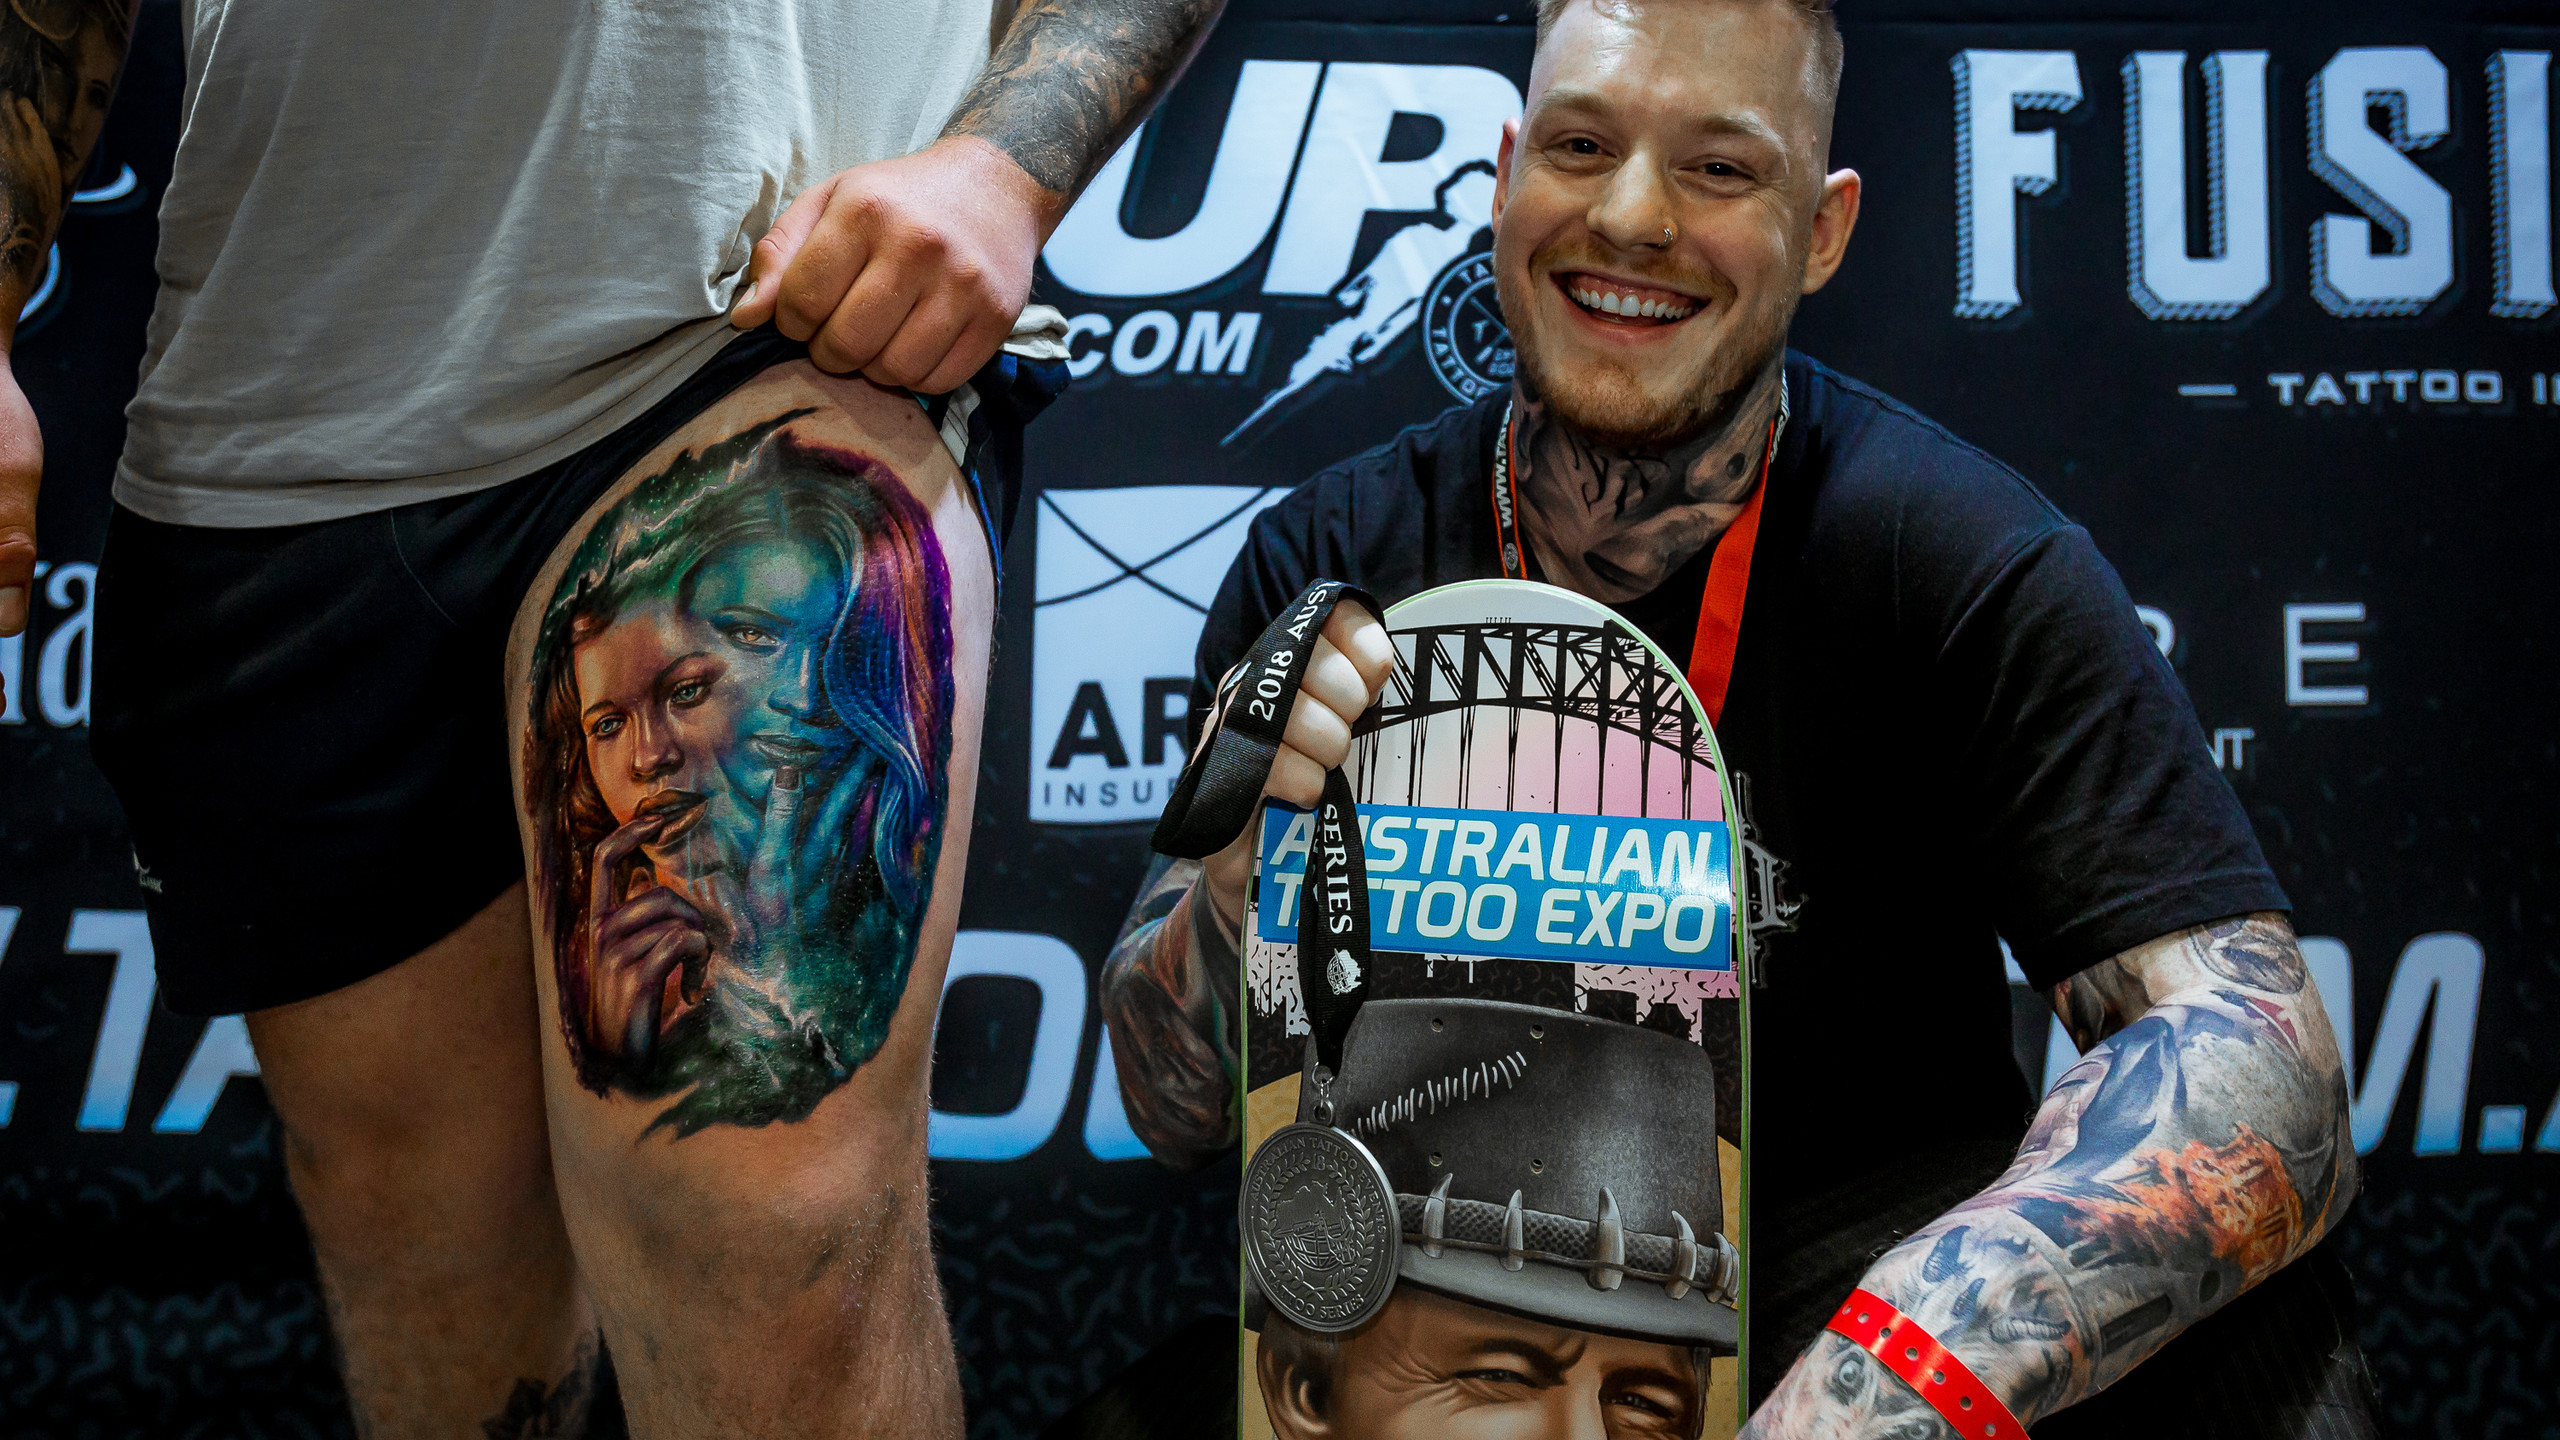 2018 Australian Tattoo Series Champion, Andrew Smith